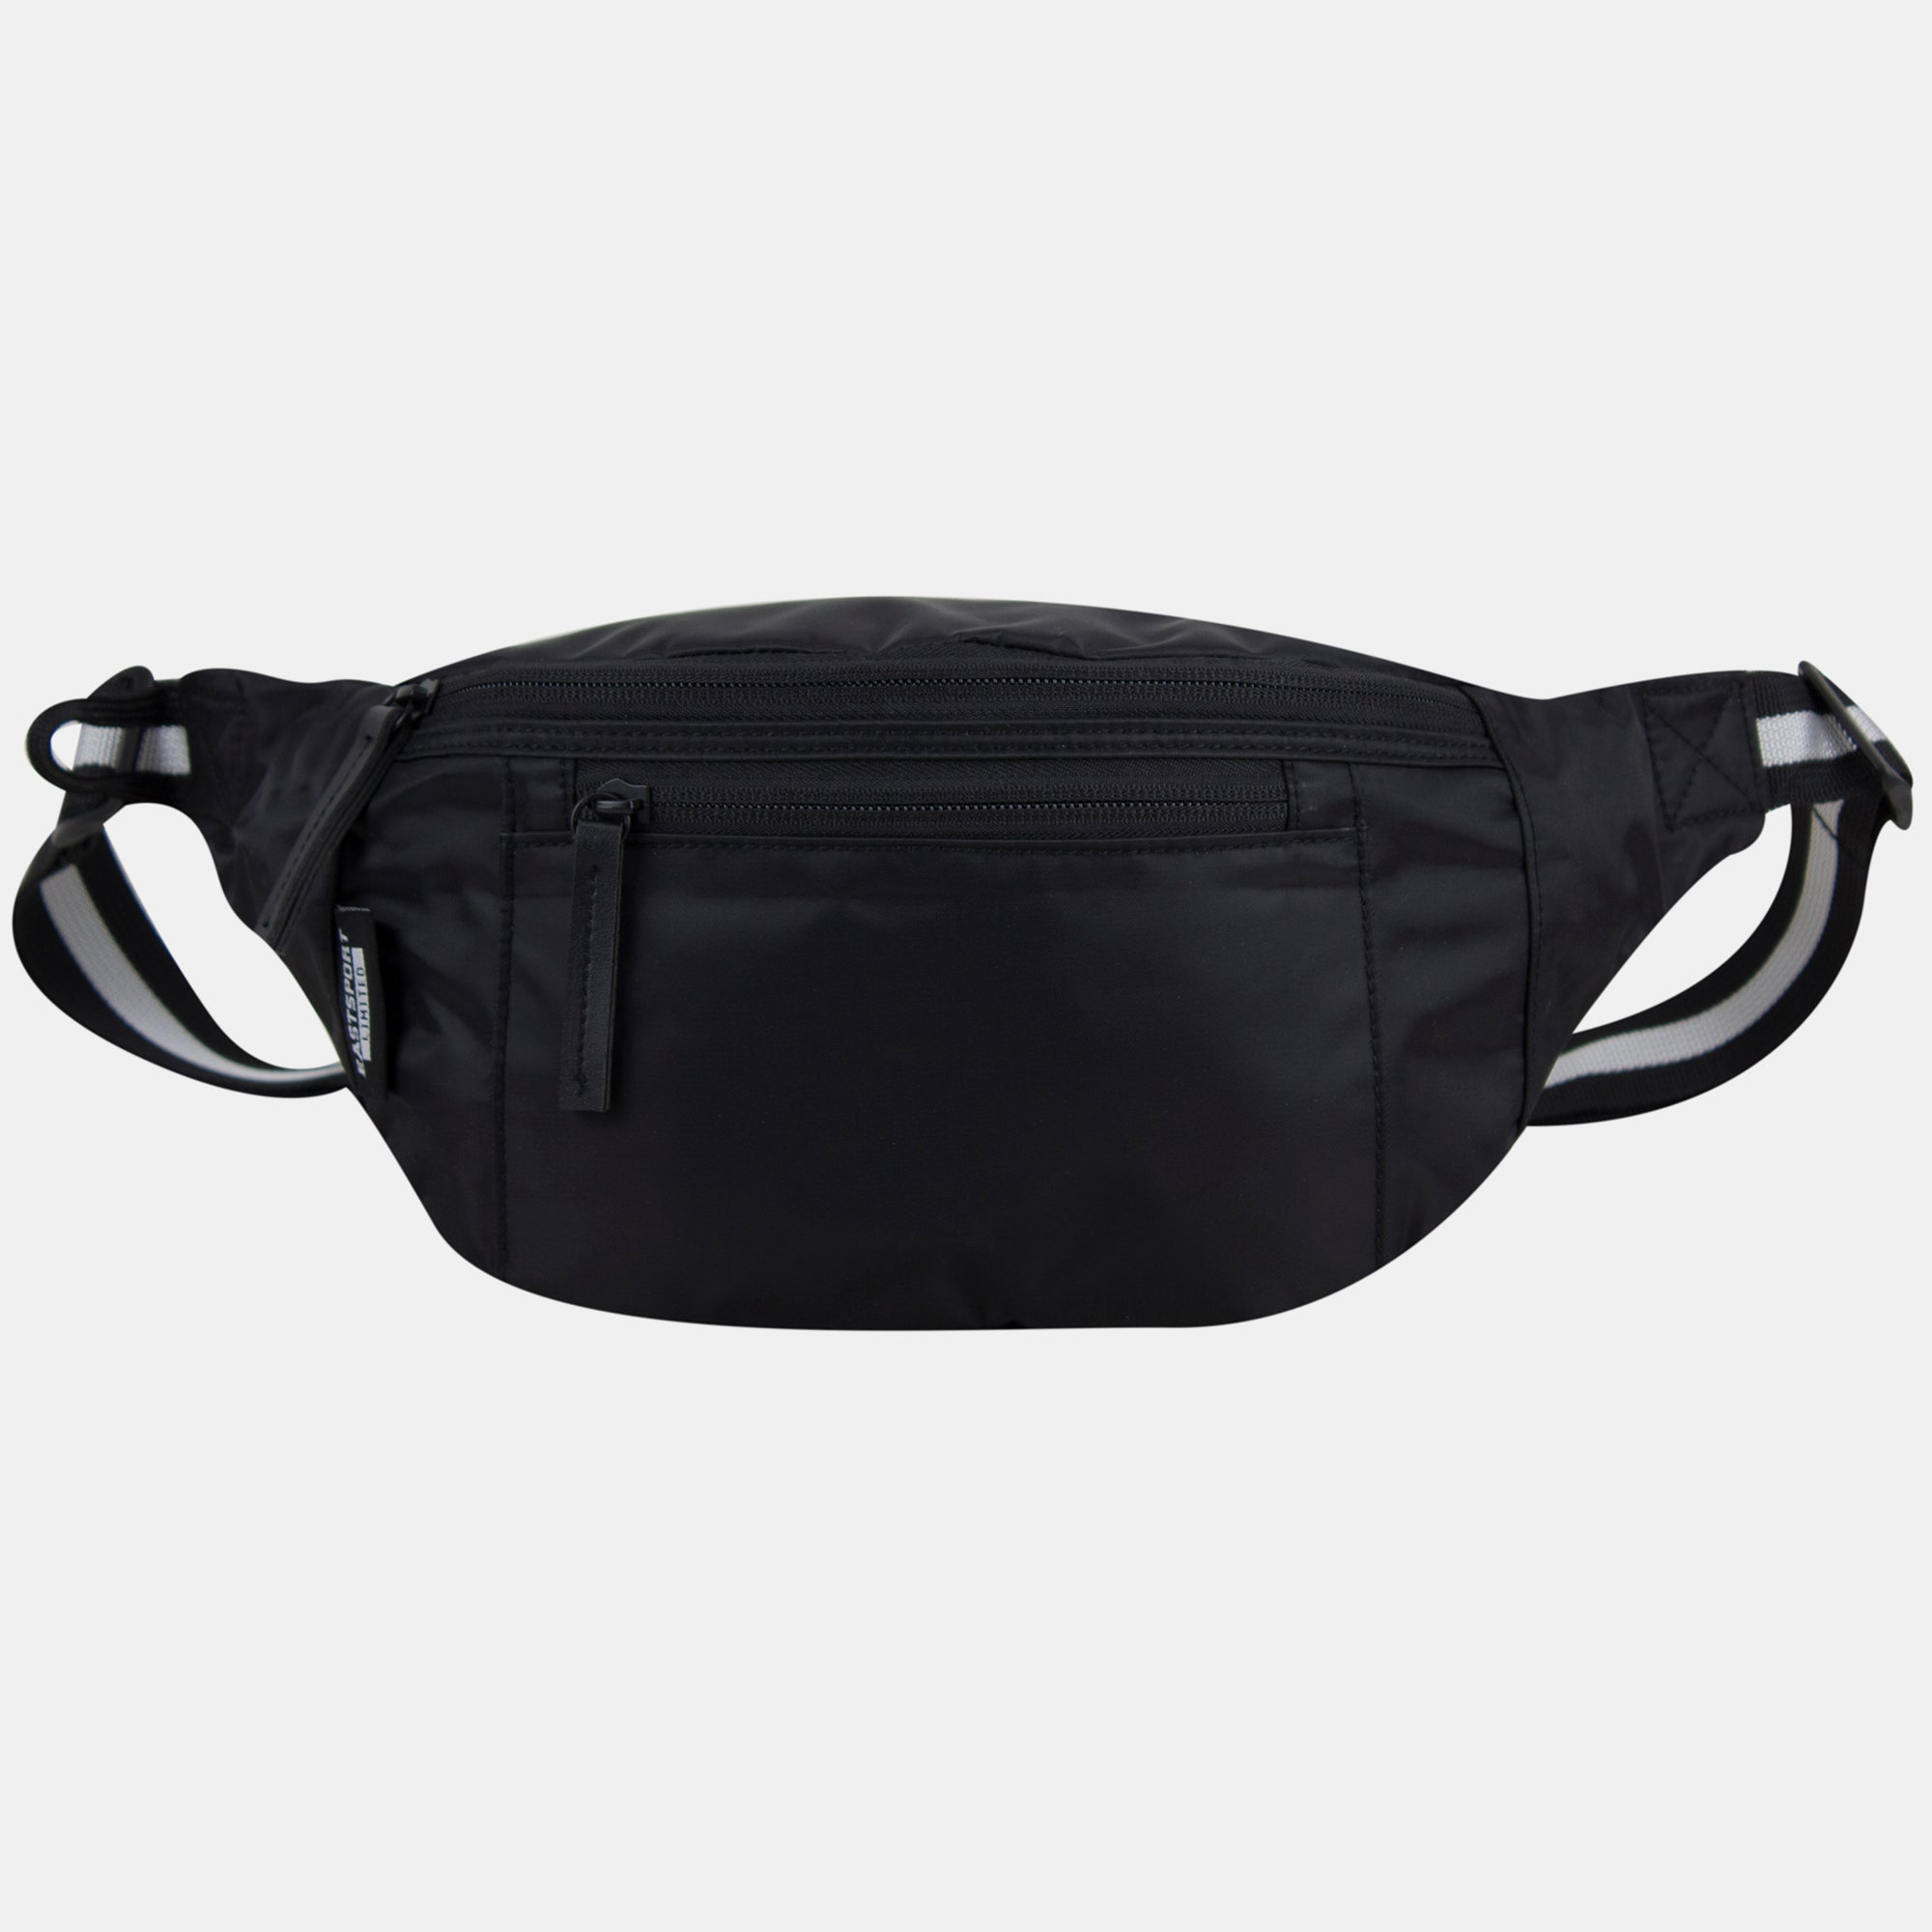 Eastsport Limited Belt Bag